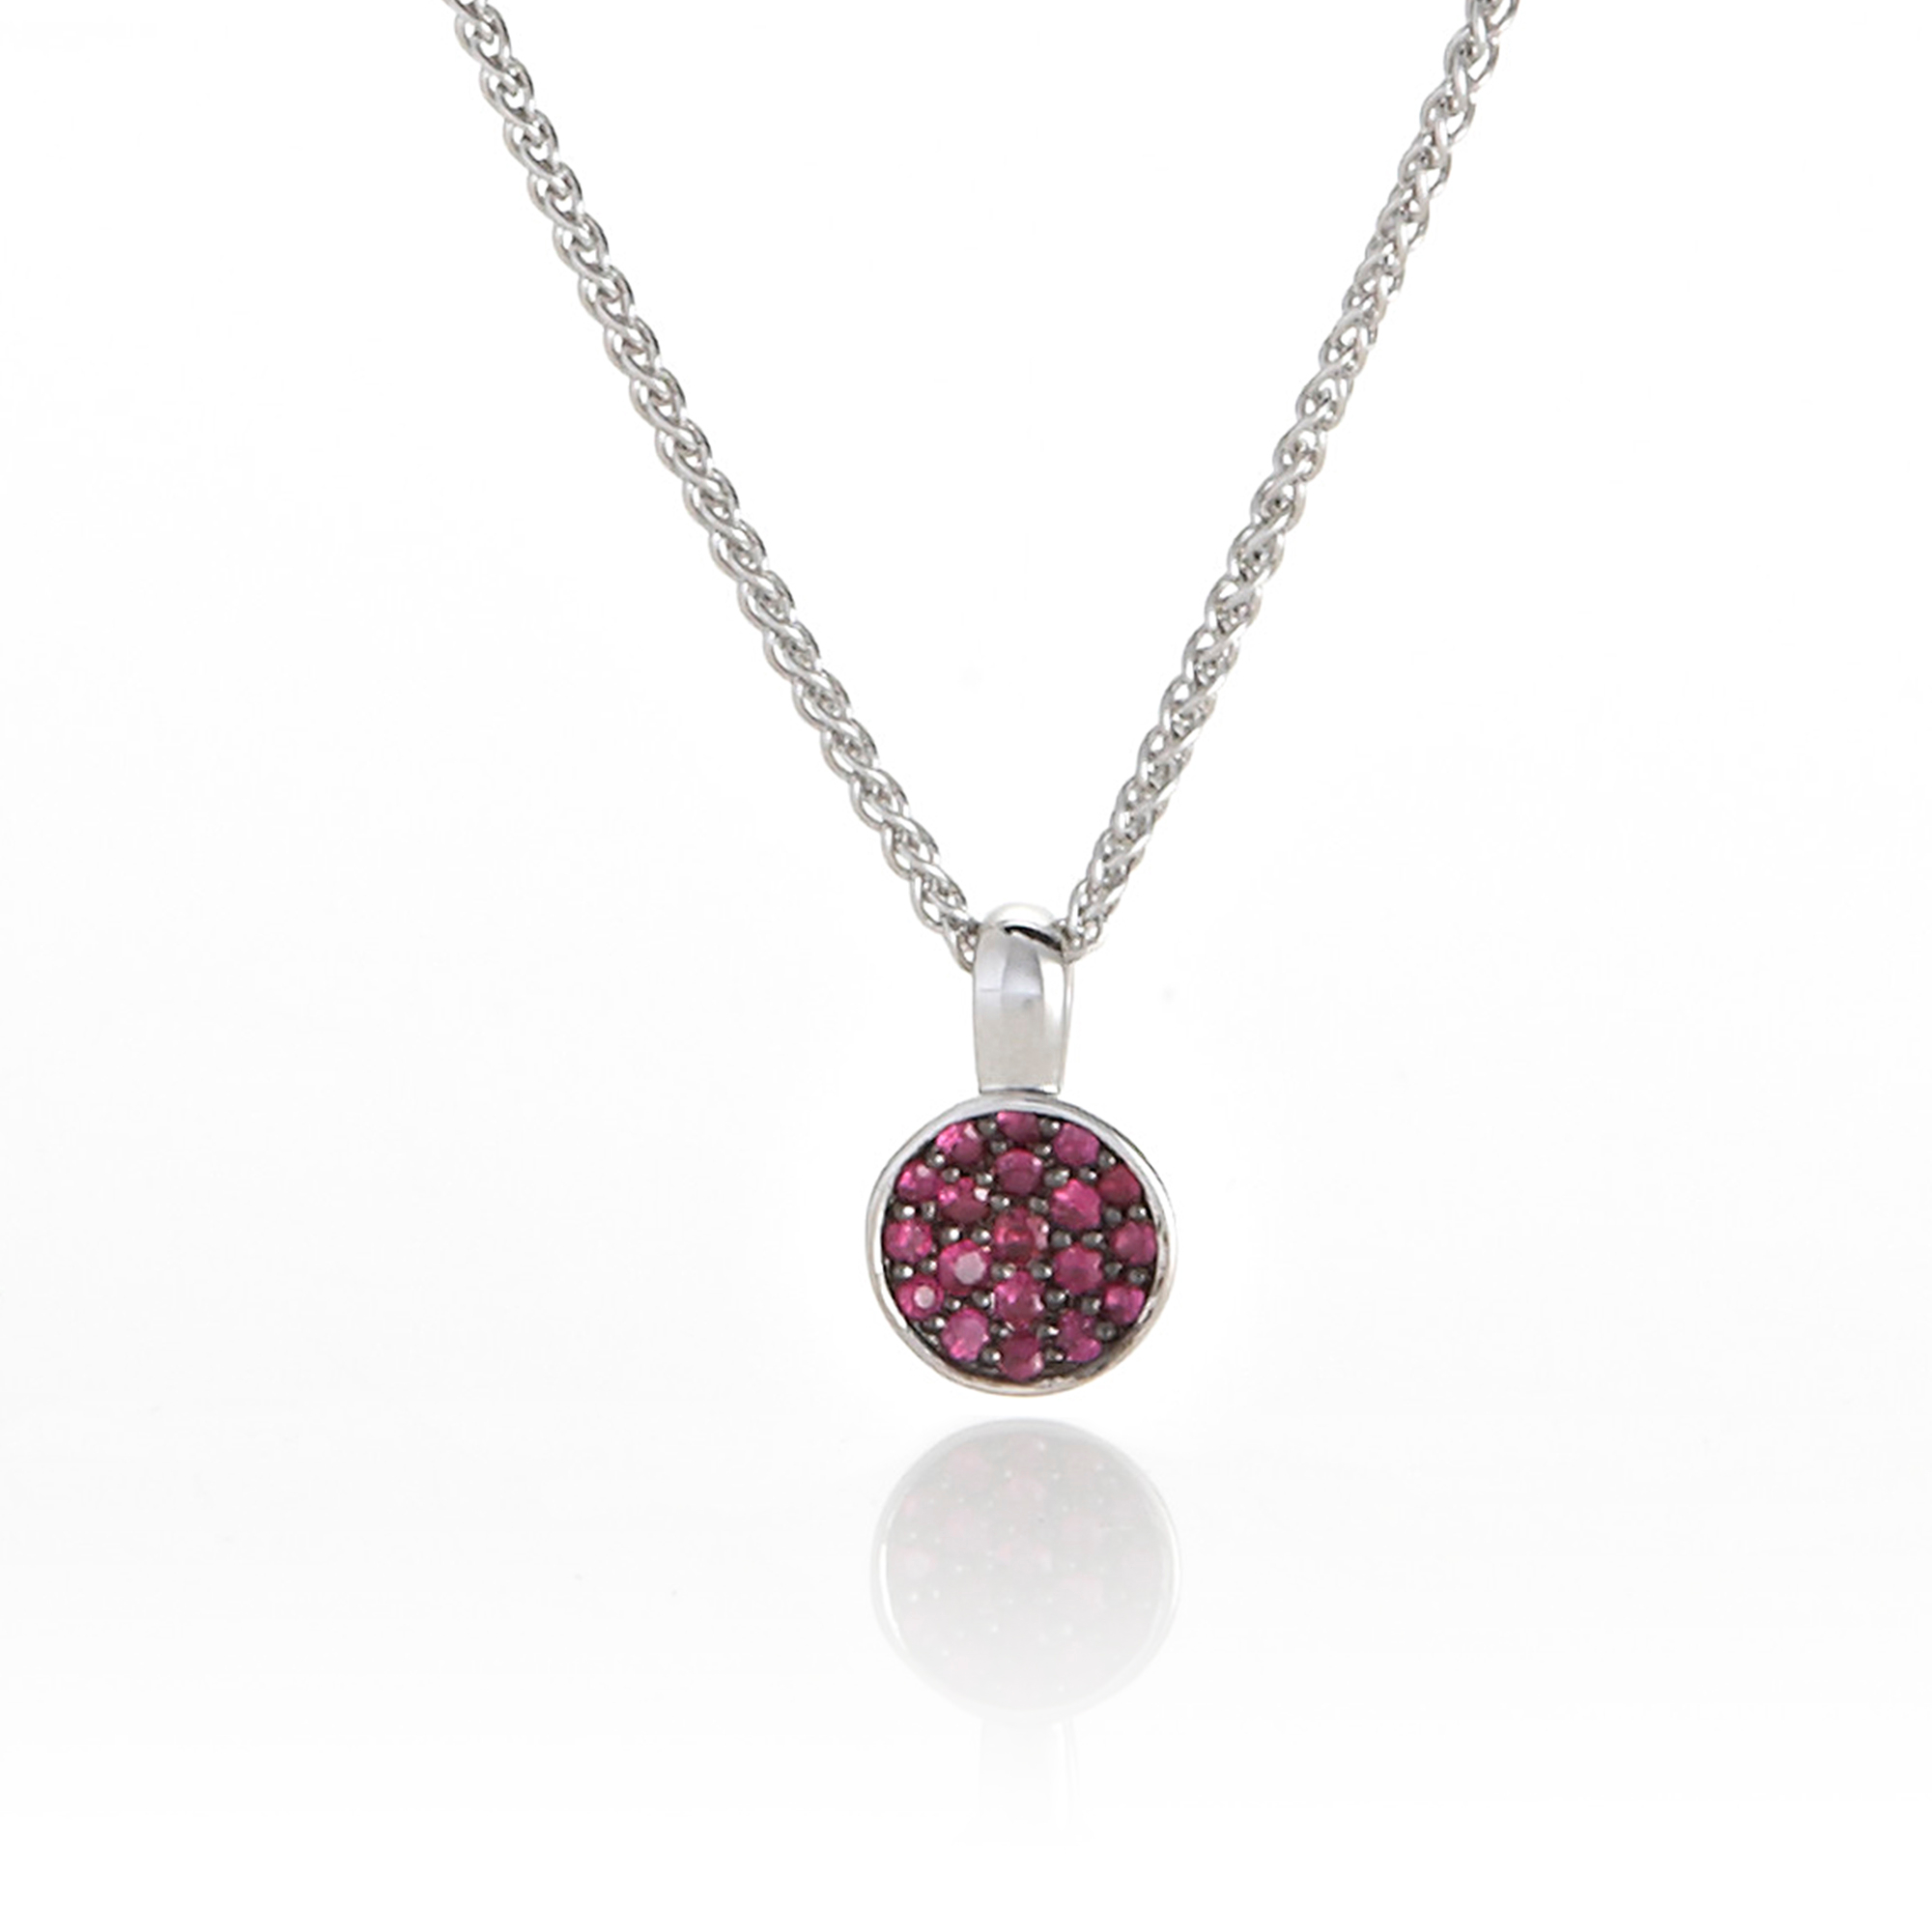 Gump's Pave Ruby Silver Necklace